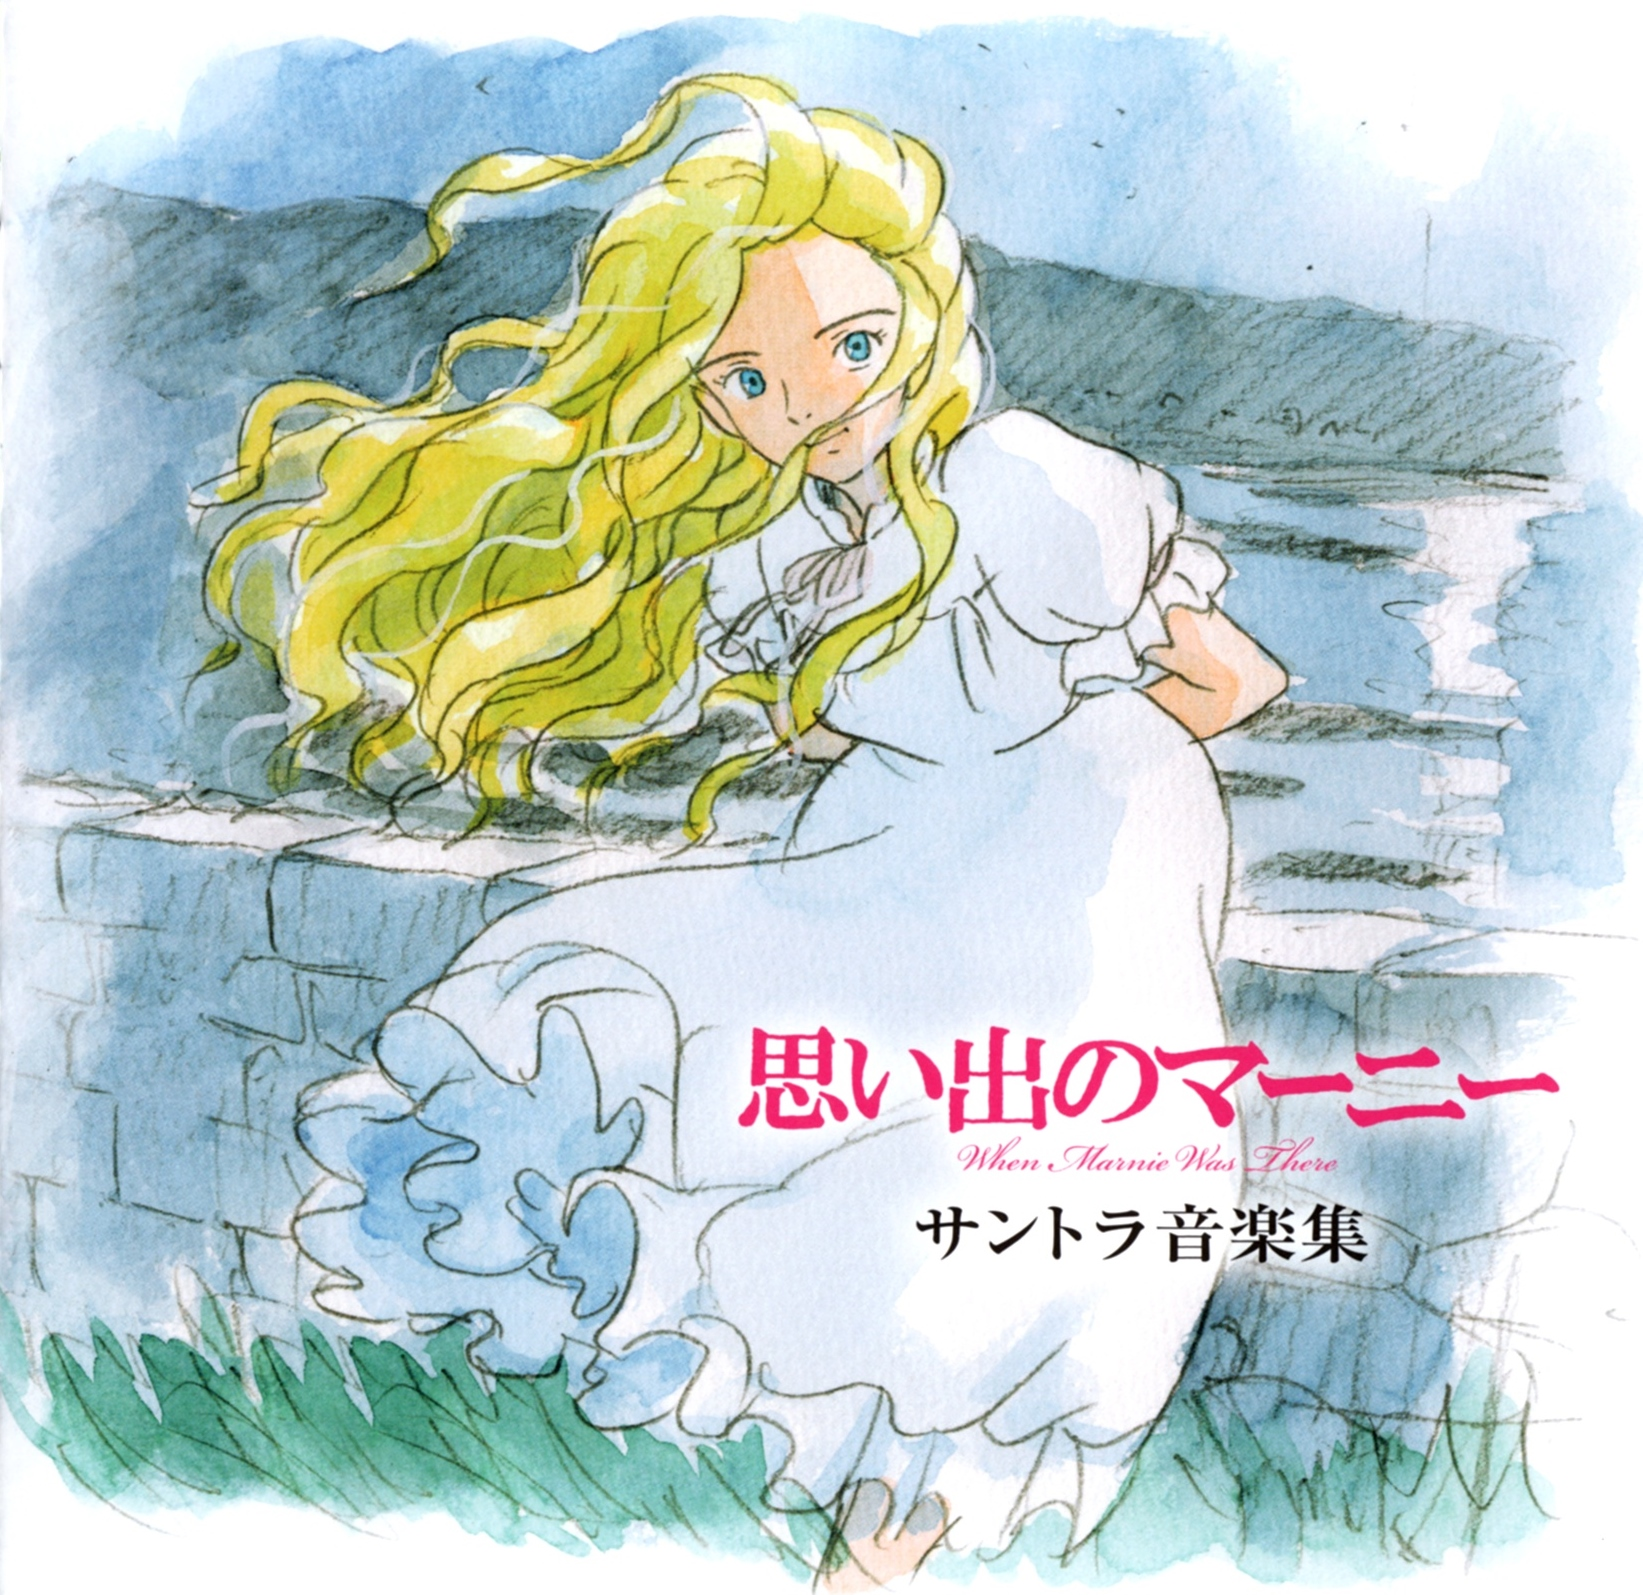 When Marnie Was There Mp3 Download When Marnie Was There Soundtracks For Free